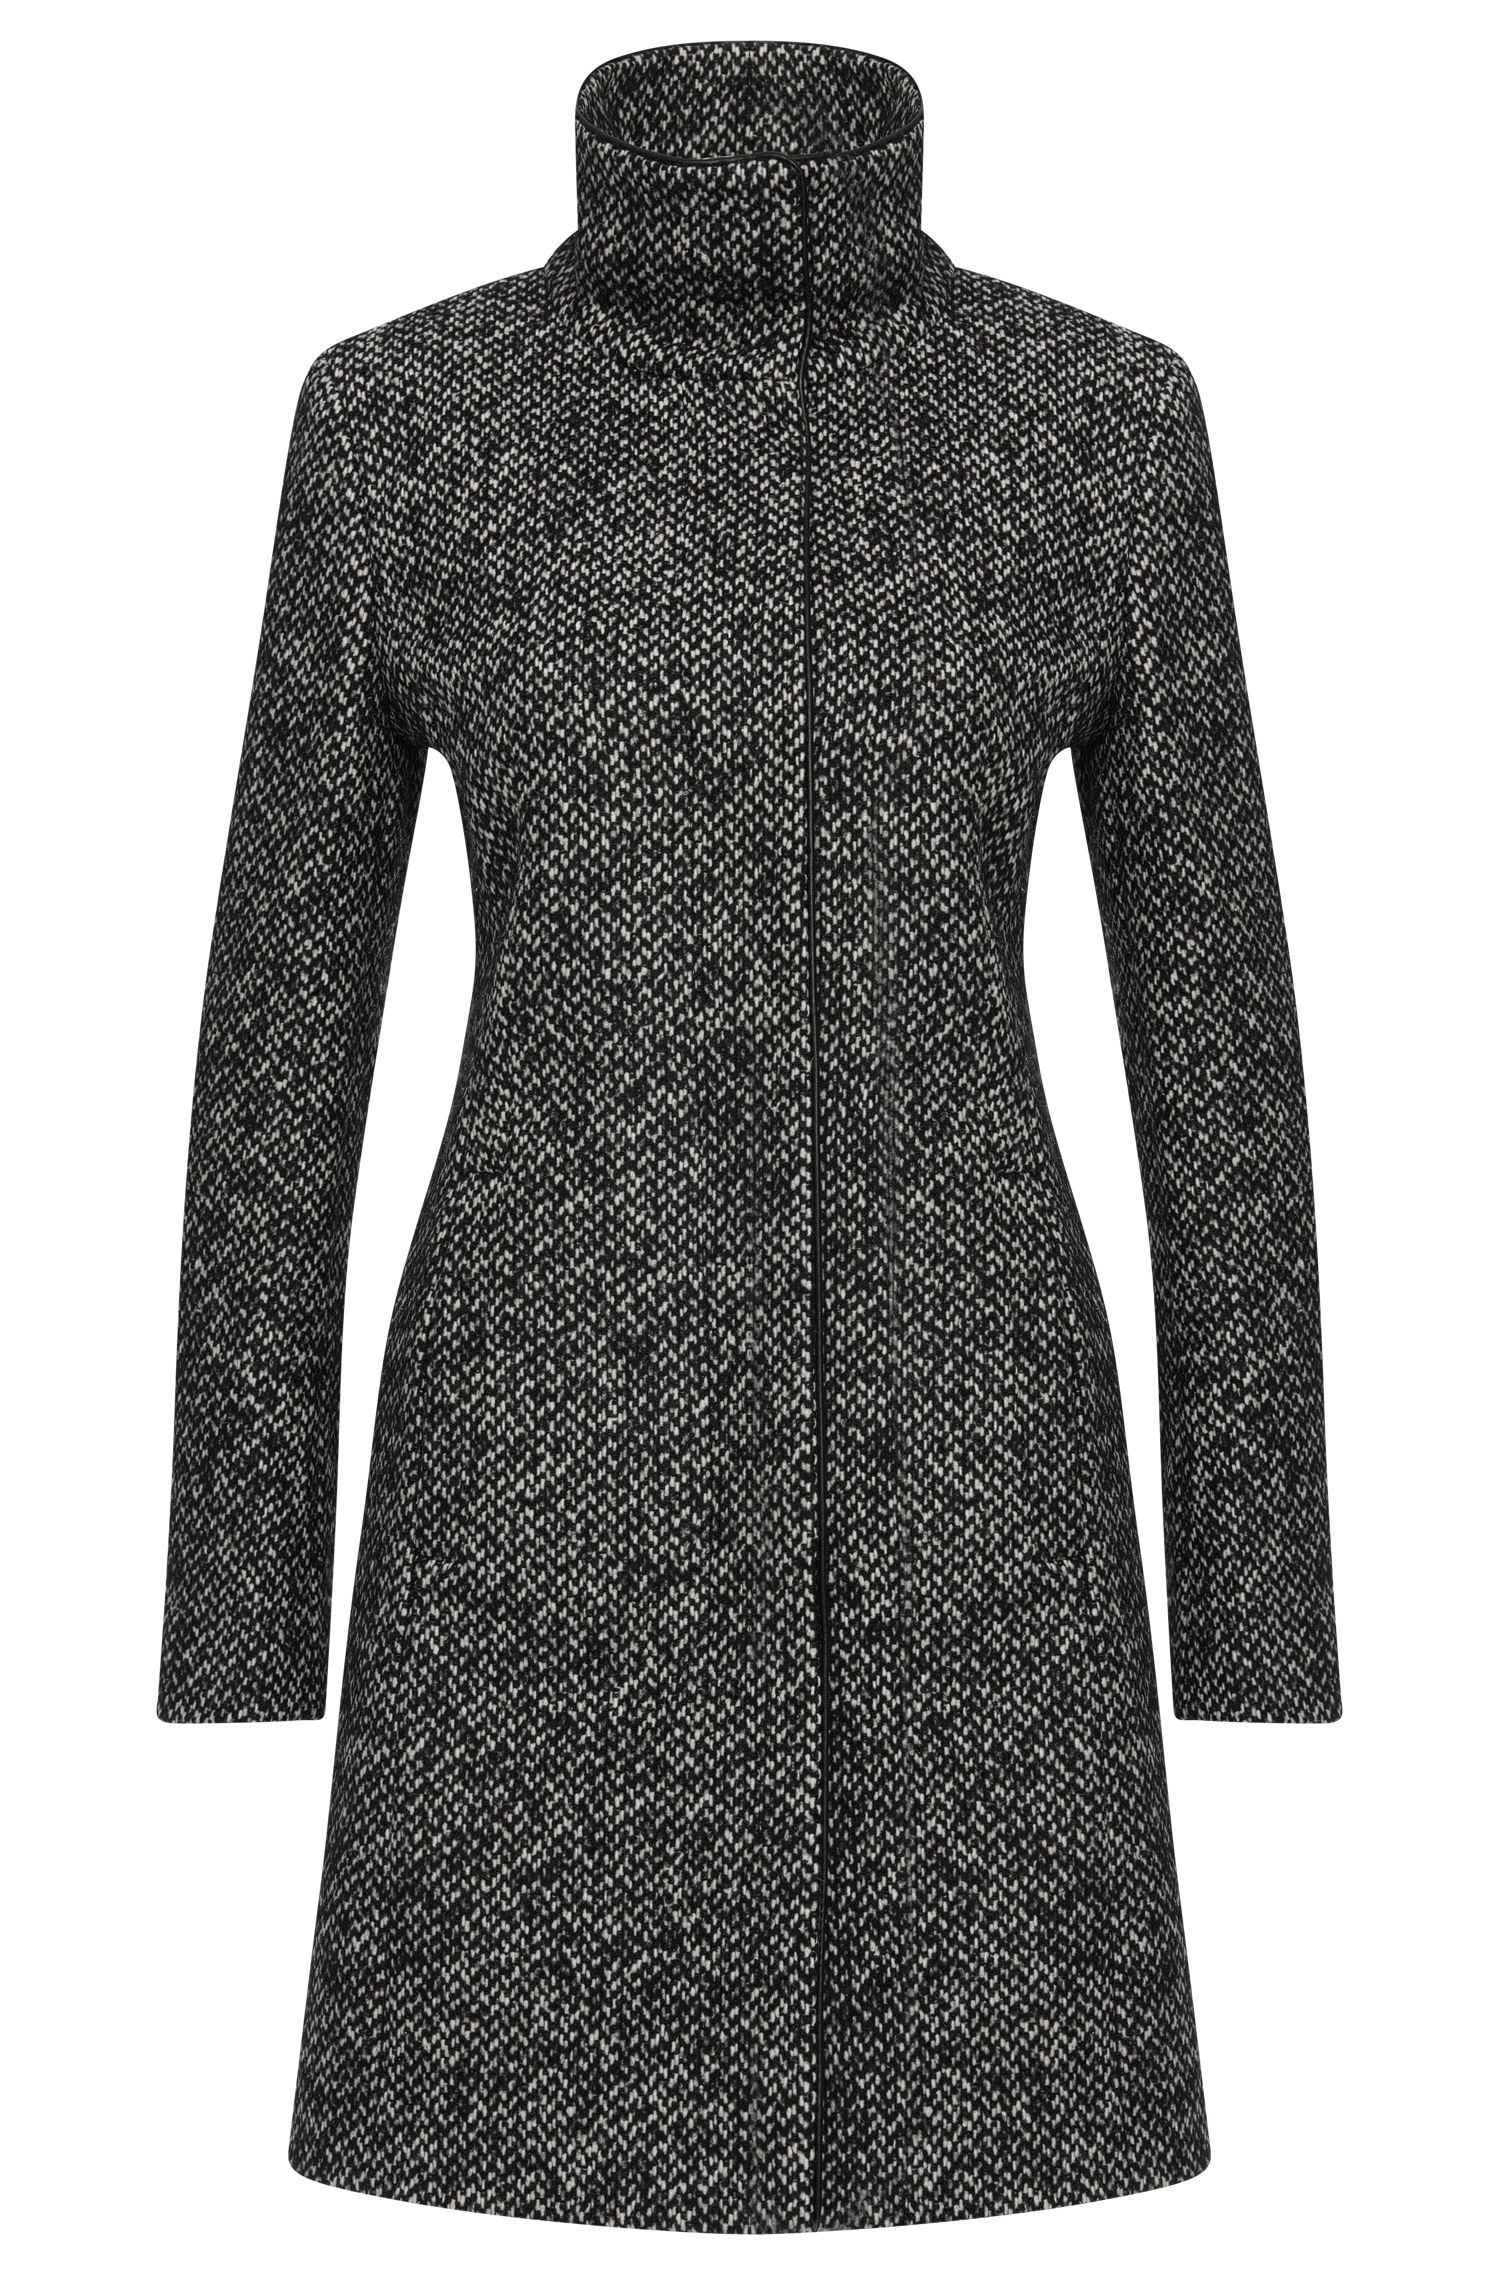 Mottled coat in wool blend: 'Maluba'